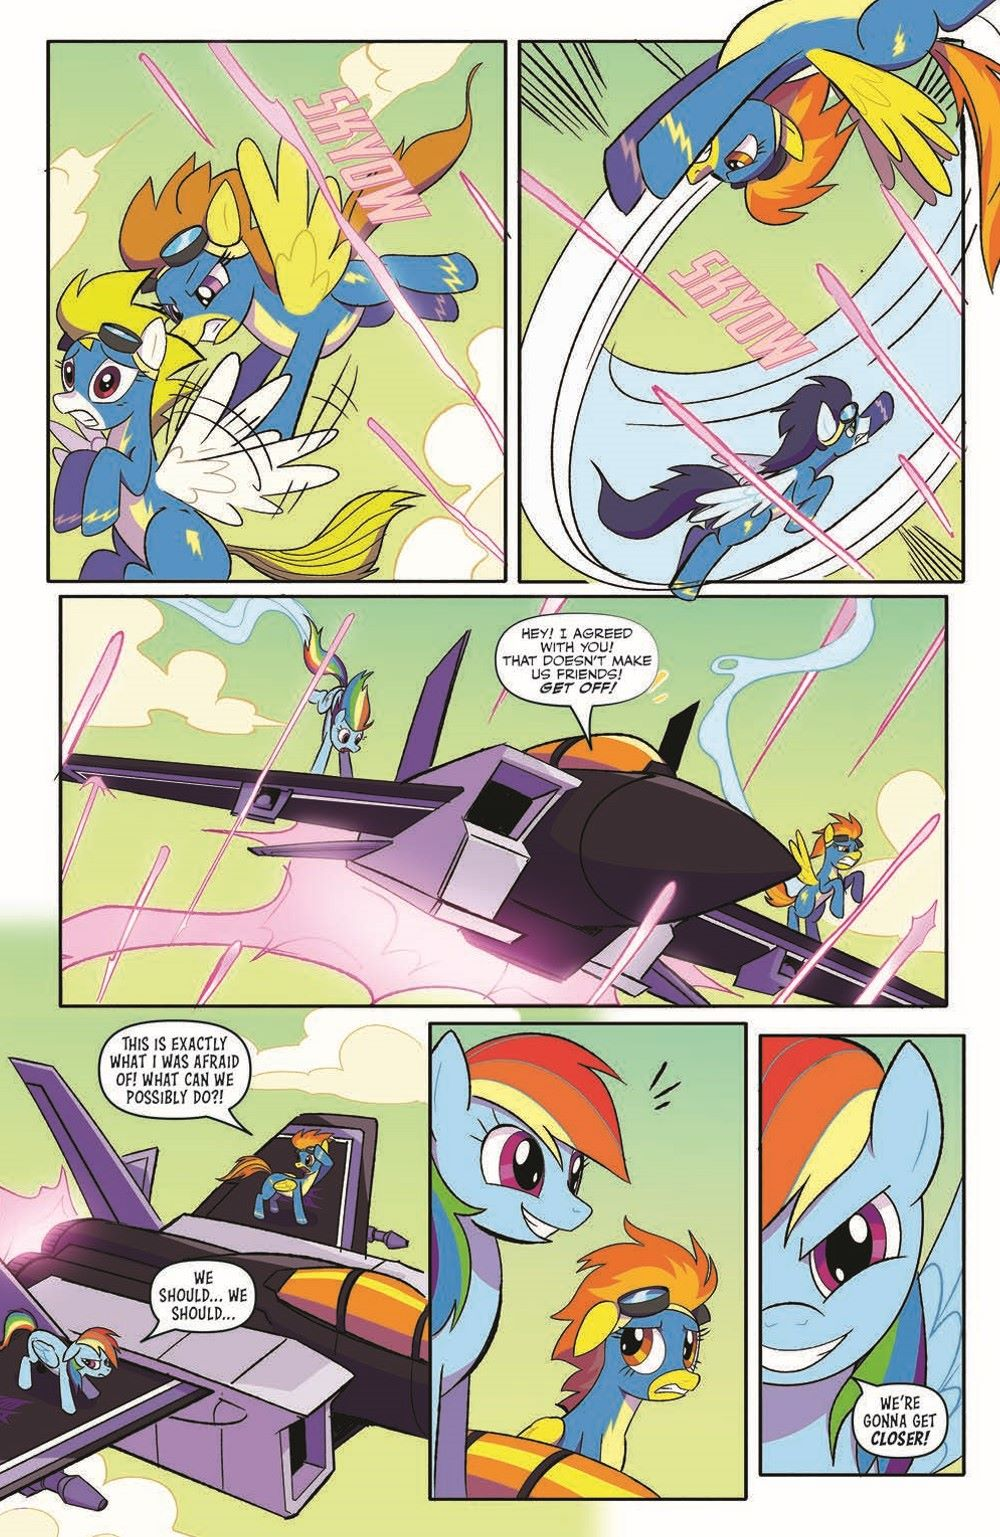 TFMLP2-02-pr-6 ComicList Previews: MY LITTLE PONY TRANSFORMERS II #2 (OF 4)